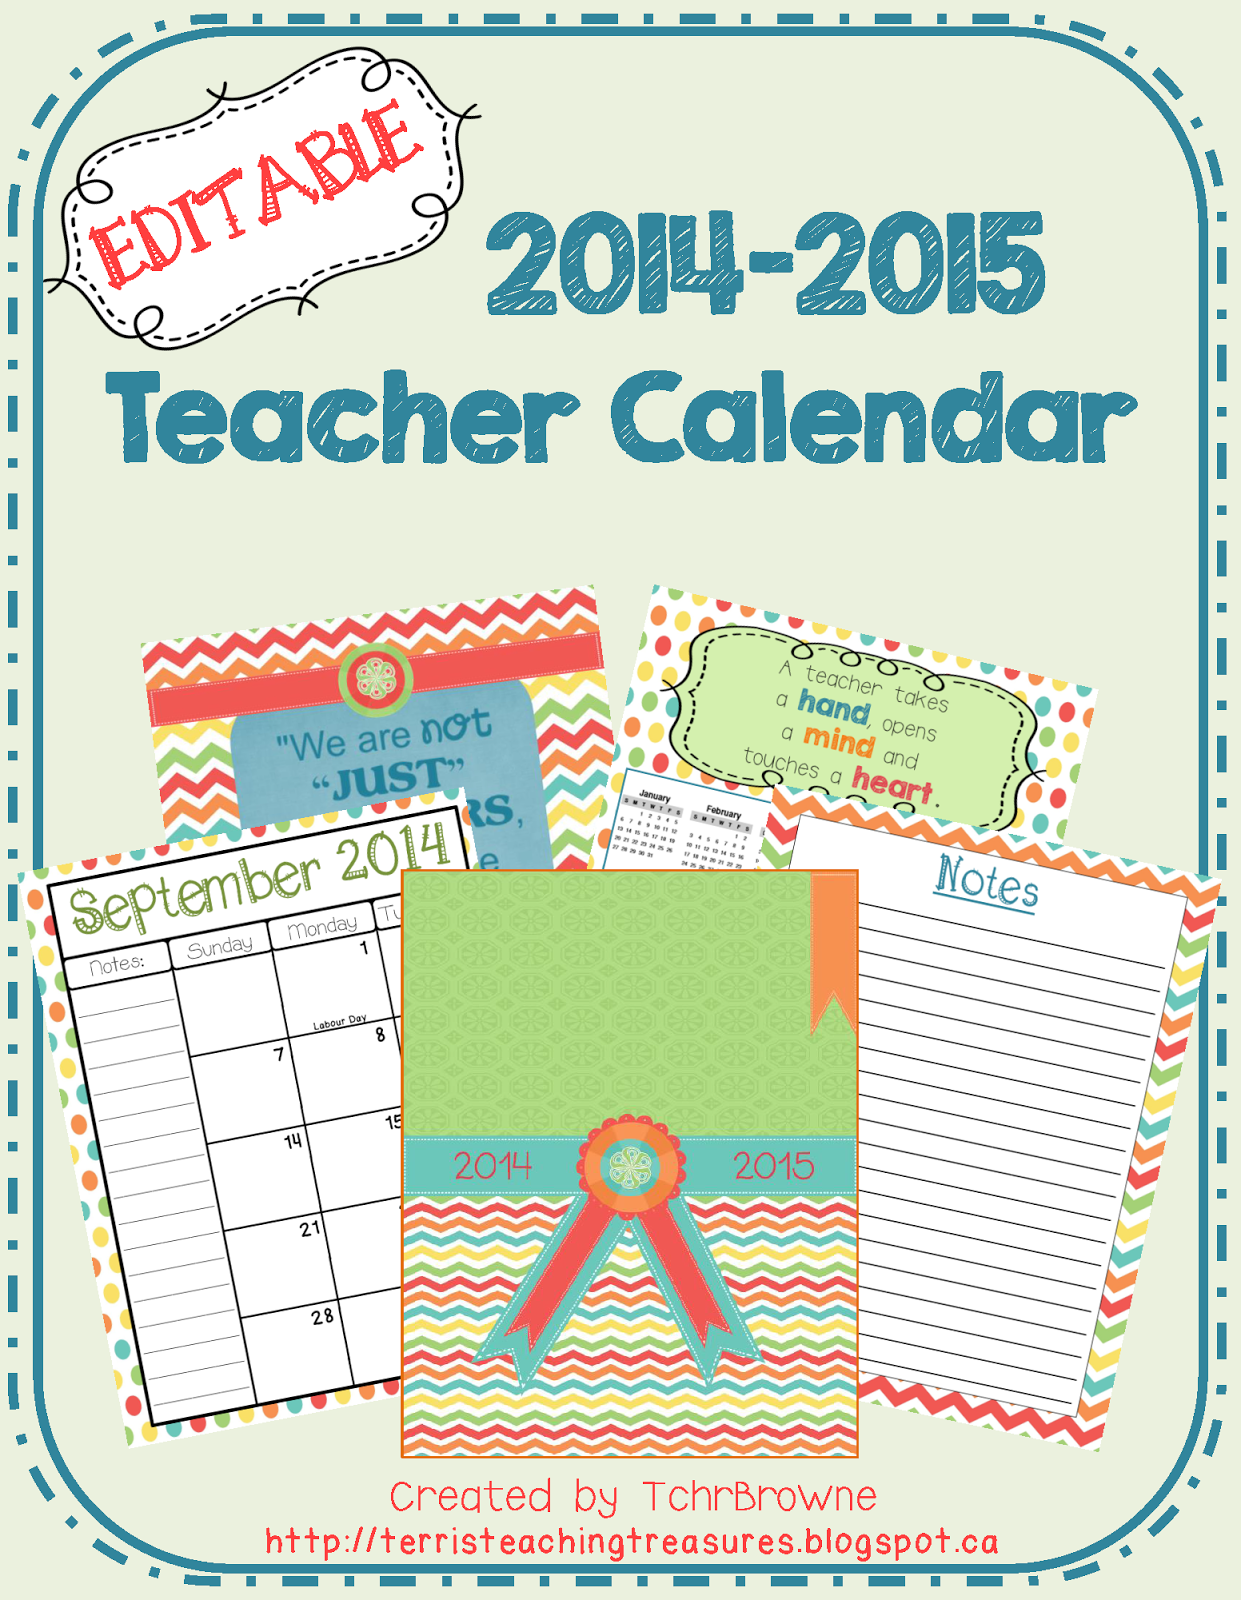 http://www.teacherspayteachers.com/Product/Editable-Teacher-Calendar-1320256